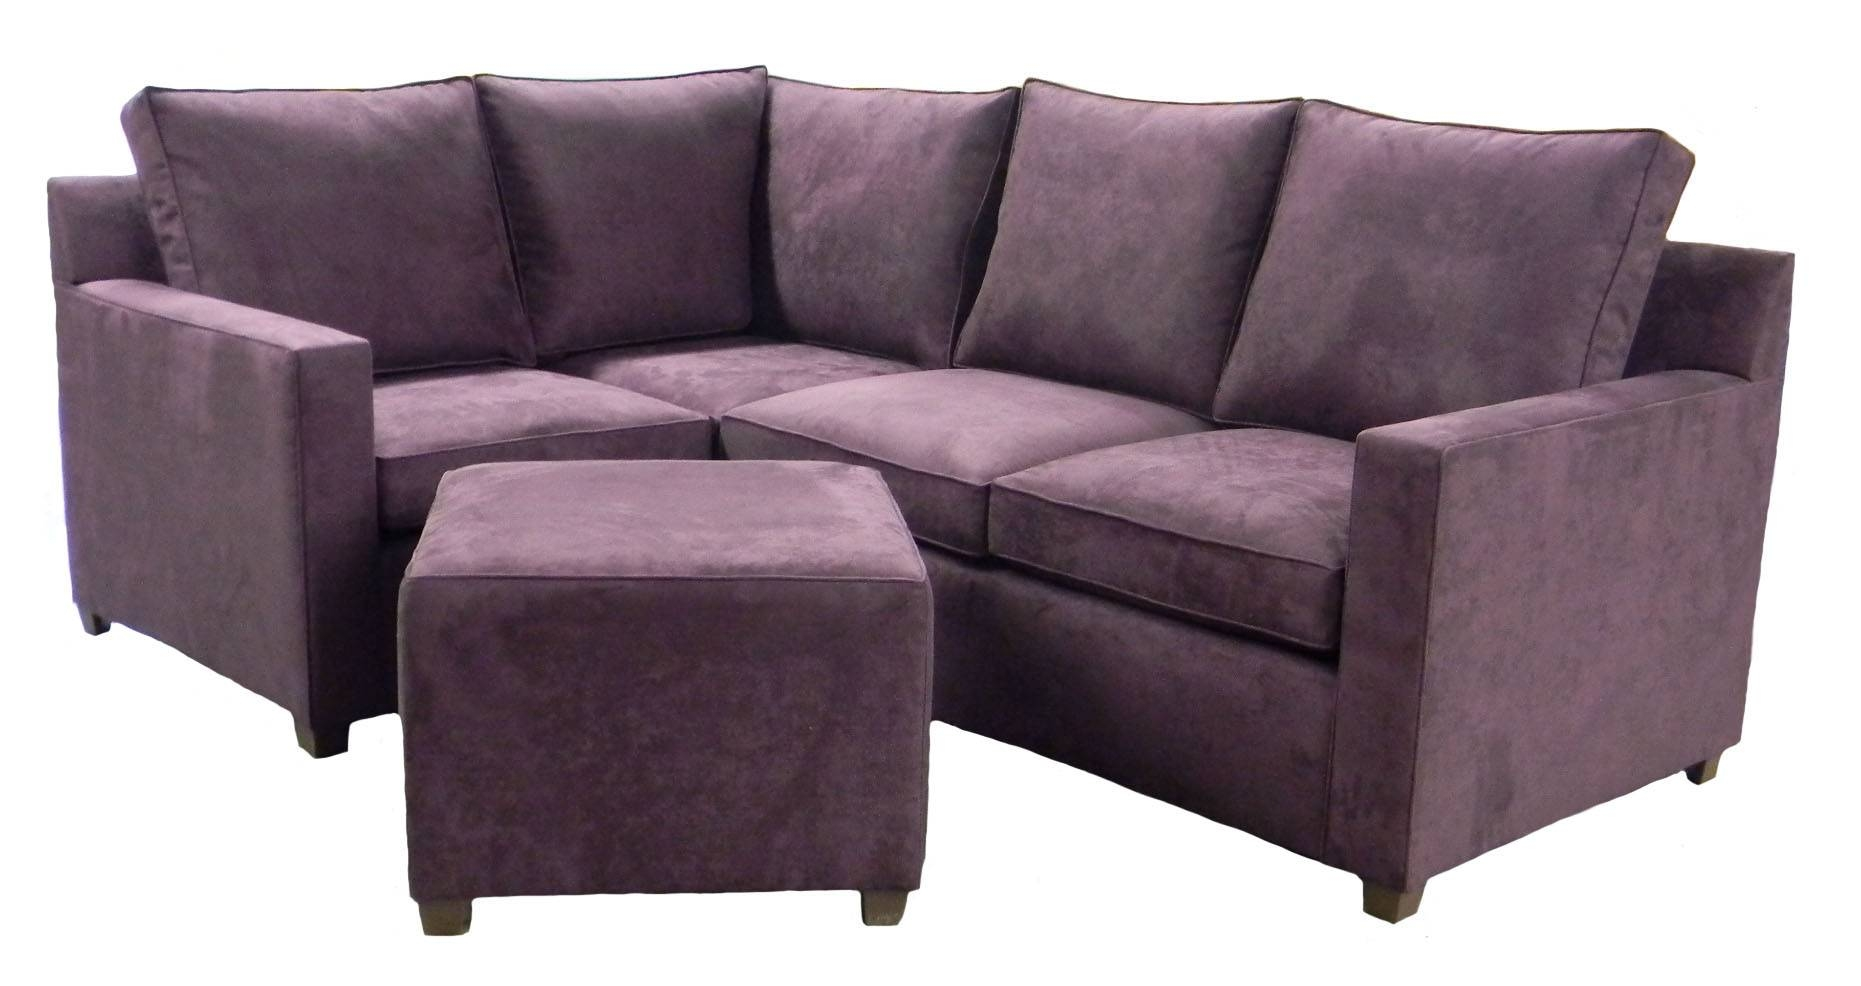 Amazing Apartment Size Sectional Sofa With Chaise 81 With intended for Bentley Sectional Leather Sofa (Image 1 of 30)